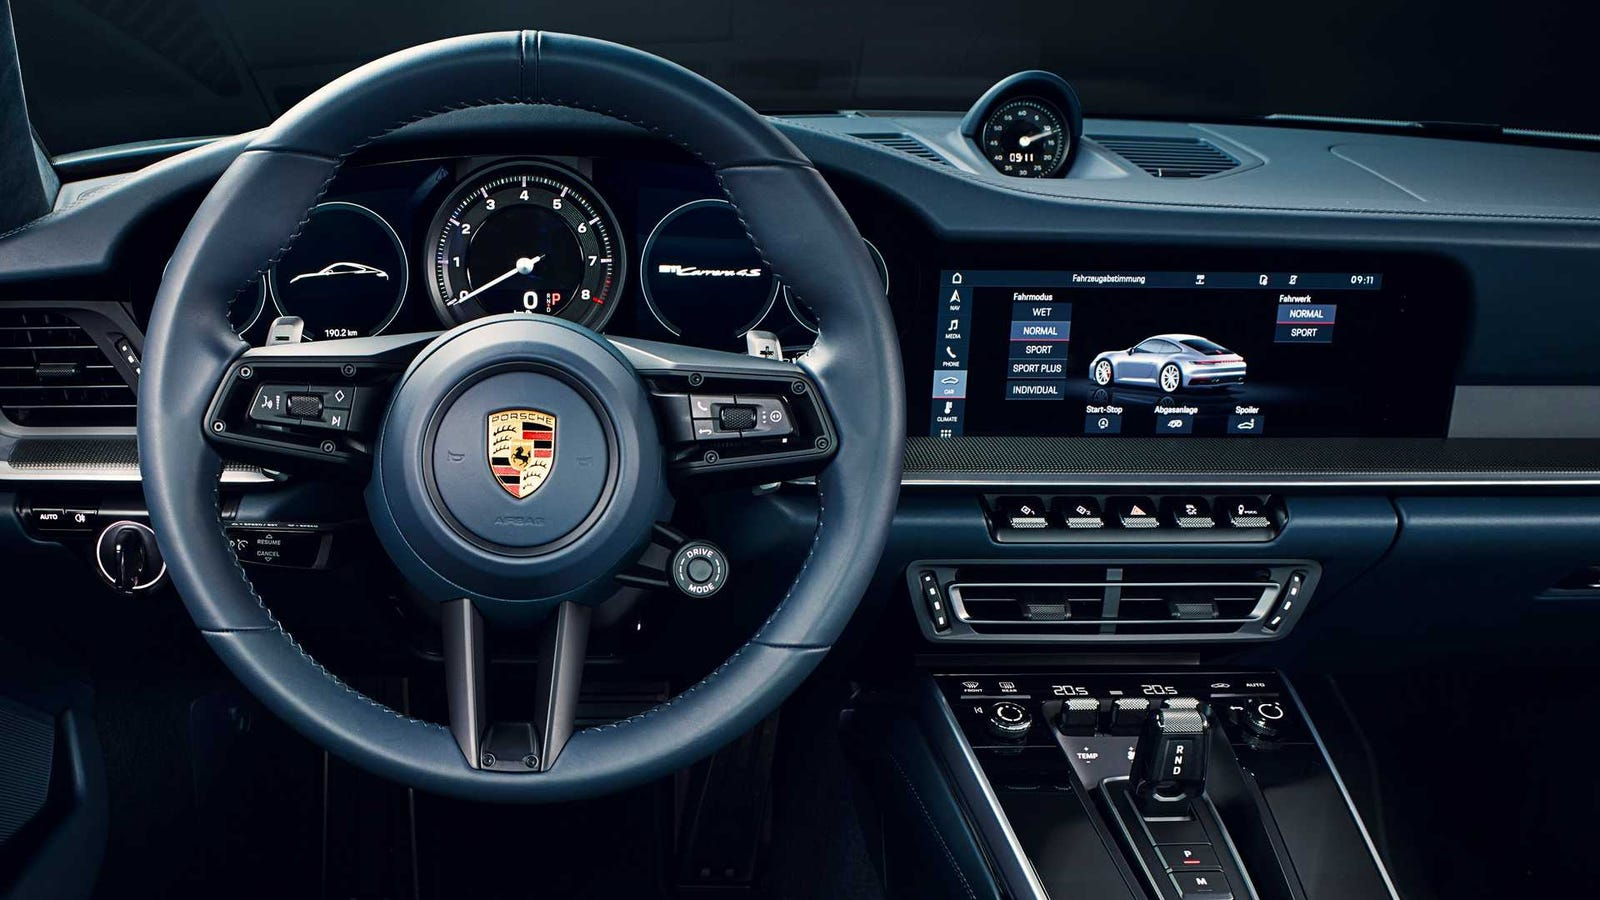 QnA VBage Here's What's New and Awesome Inside the 2020 Porsche 911